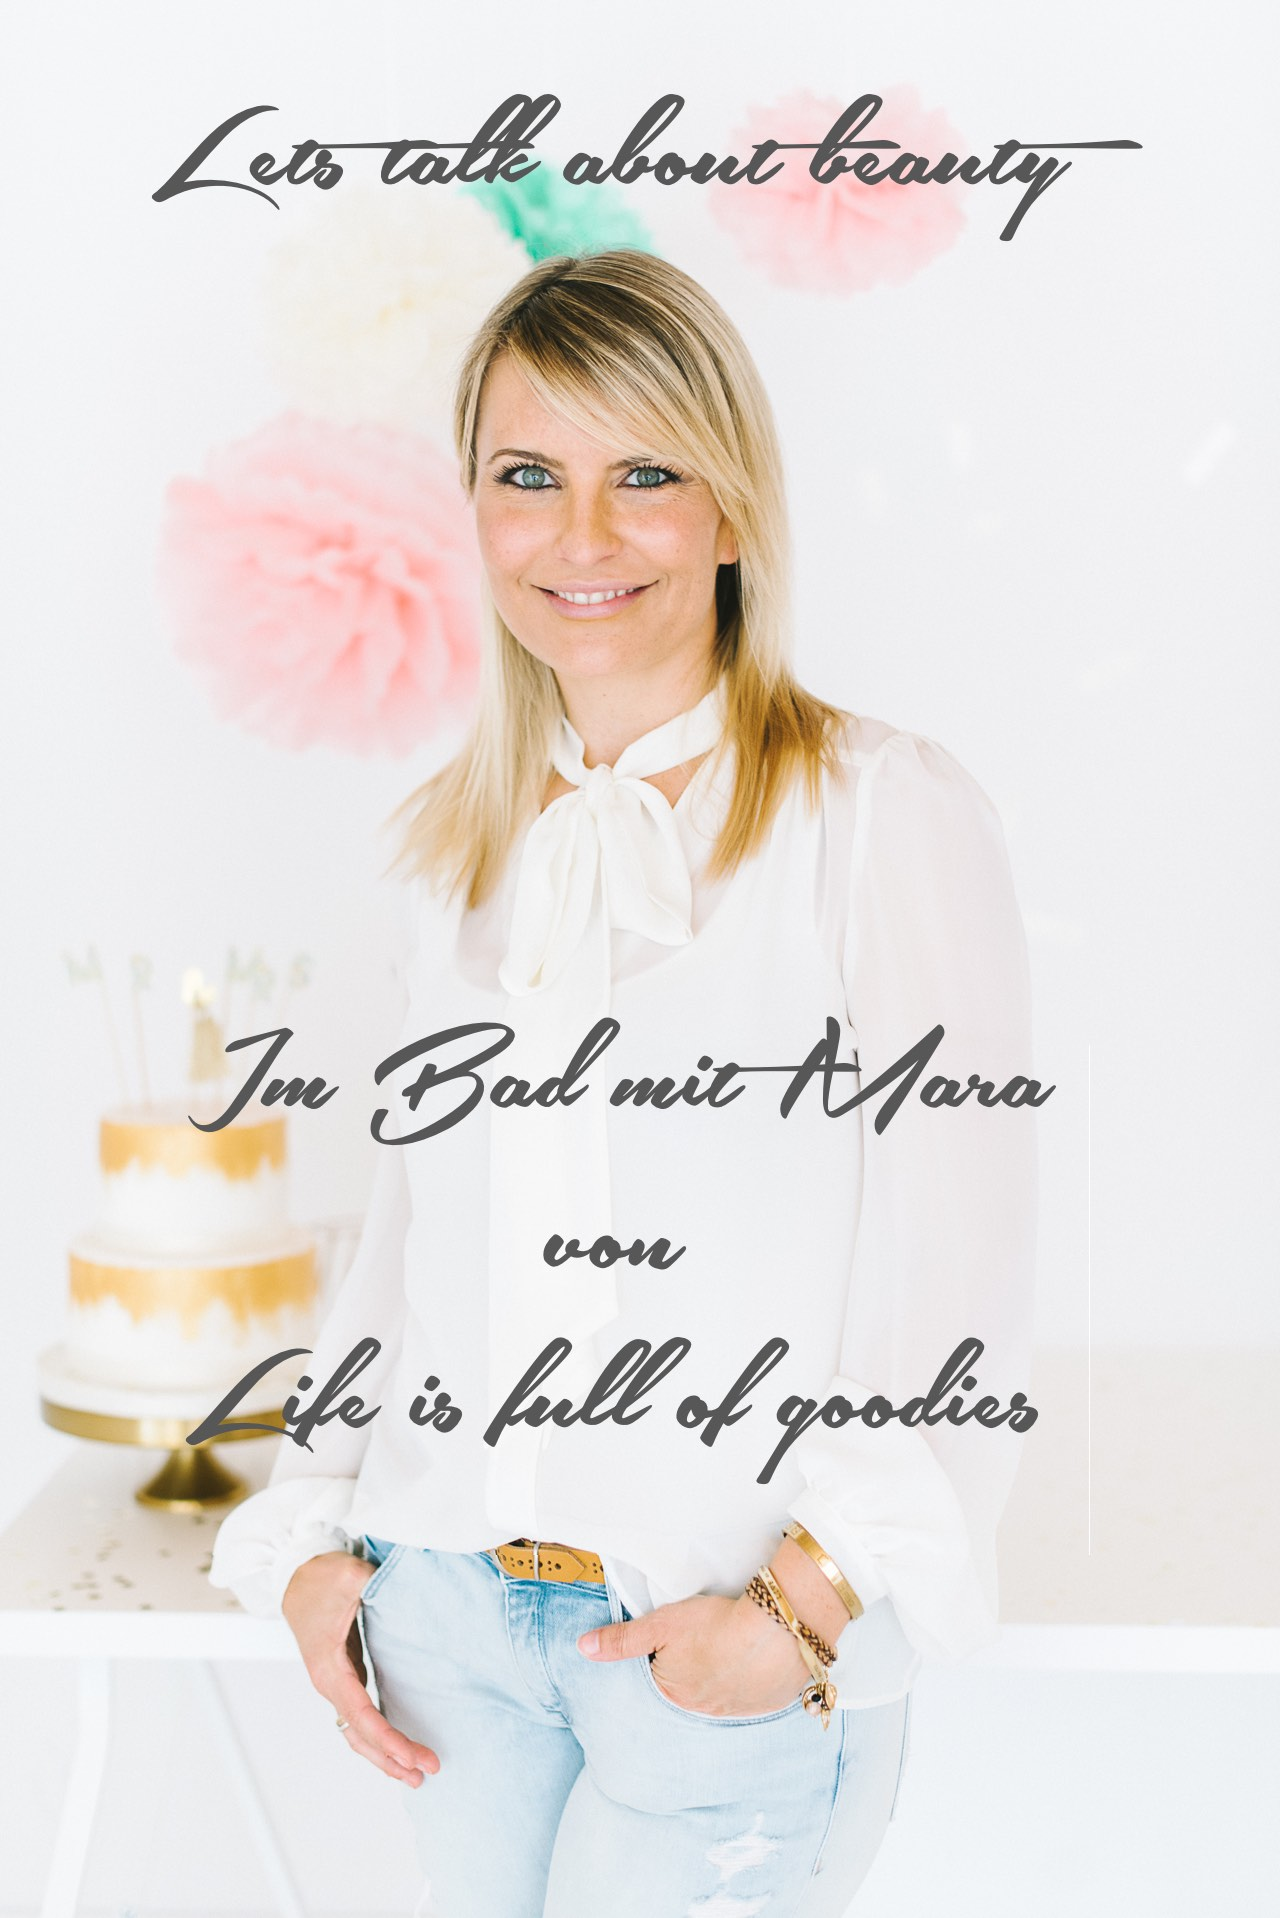 Beautyinterview mit Kuchenqueen und Foodbloggerin Mara von Life is full of goodies.